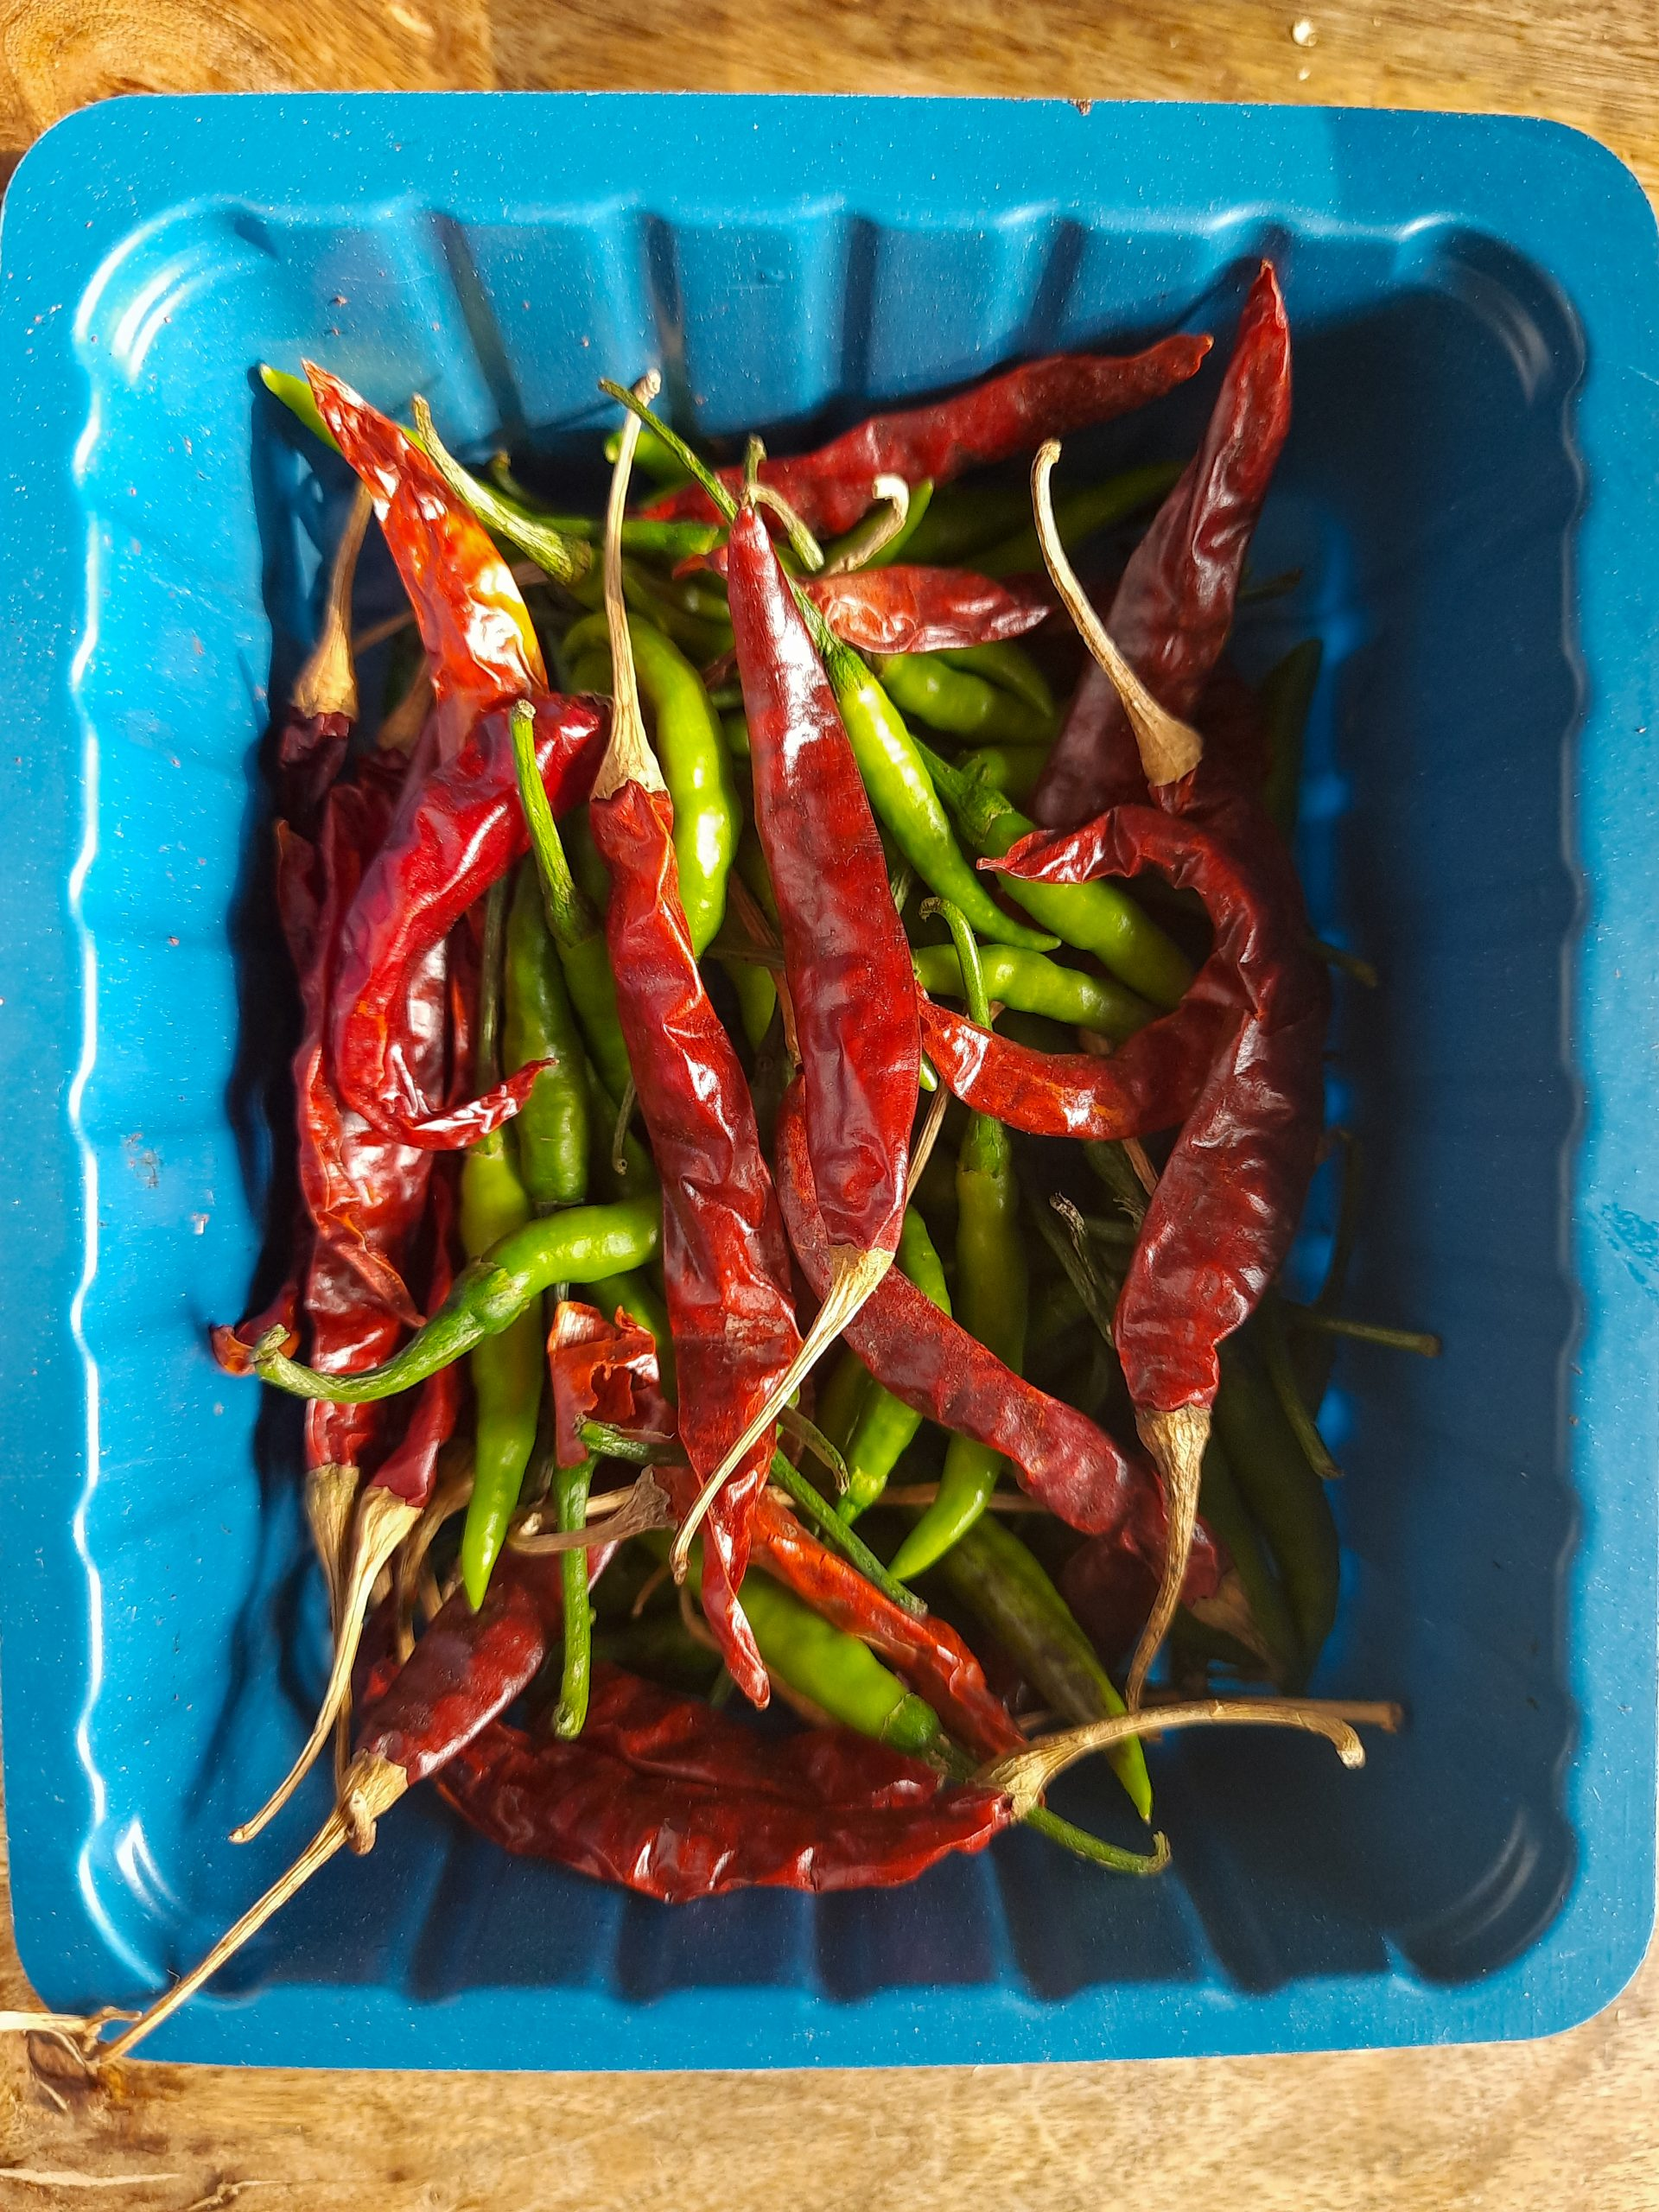 chillies in a box